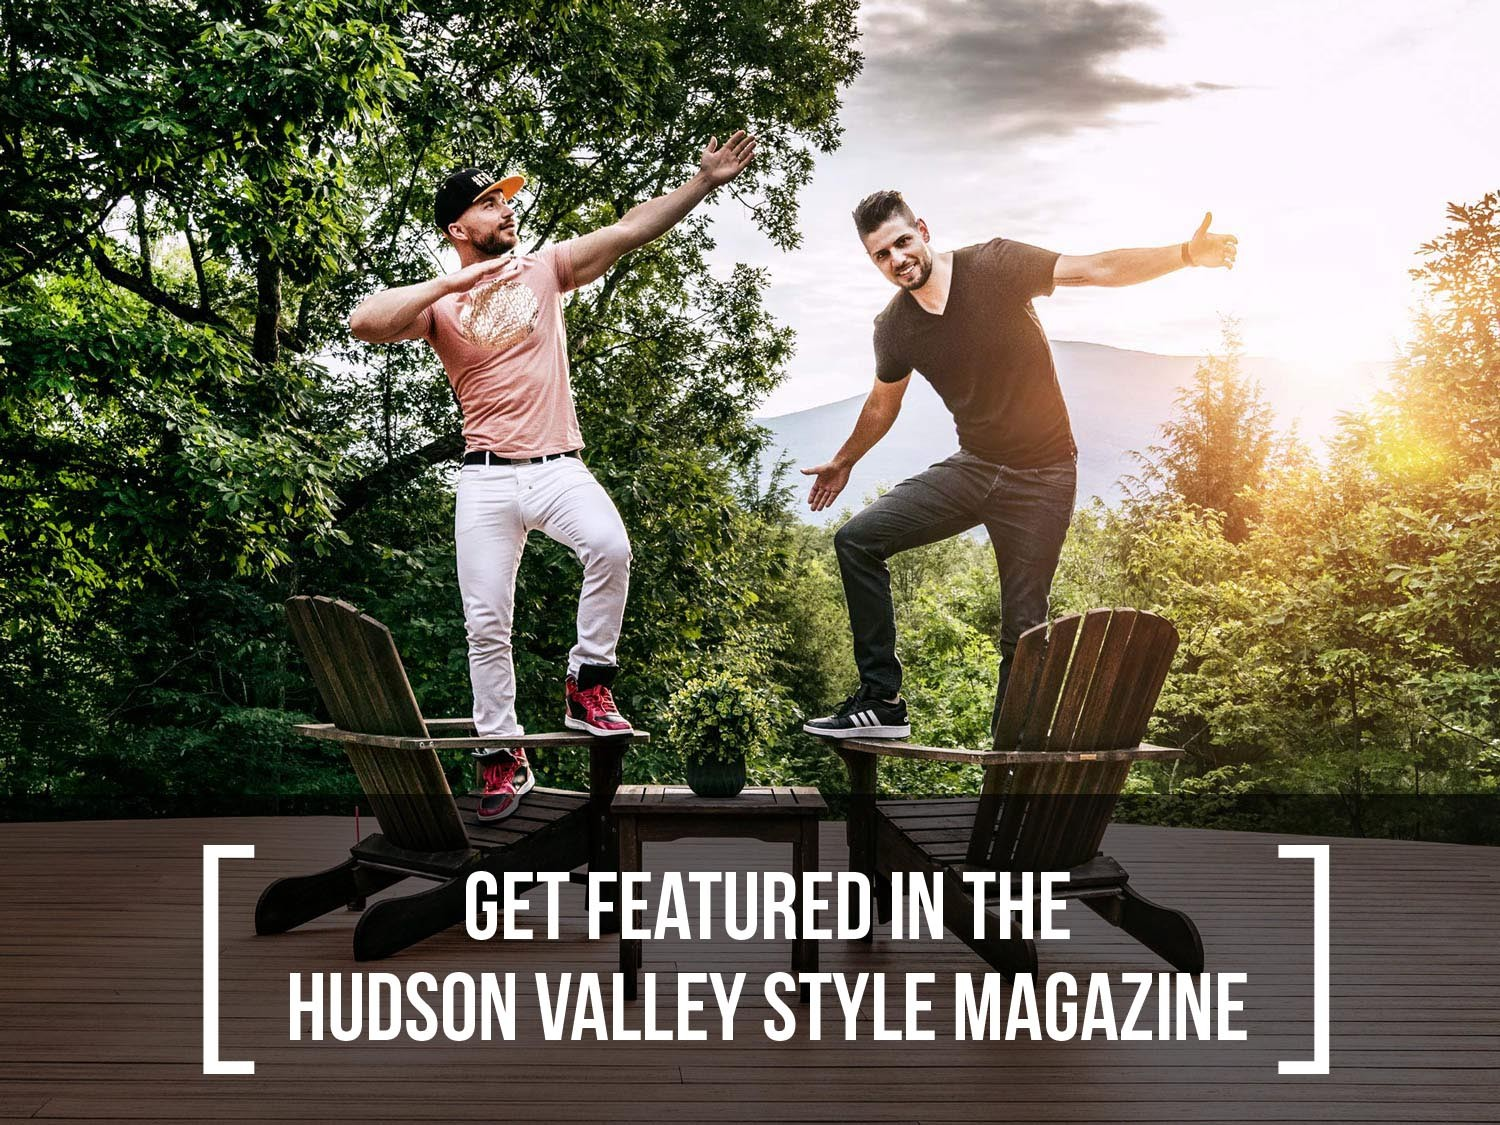 Exploring Hudson Valley with Max and Dino – Get featured in the Hudson Valley Style Magazine